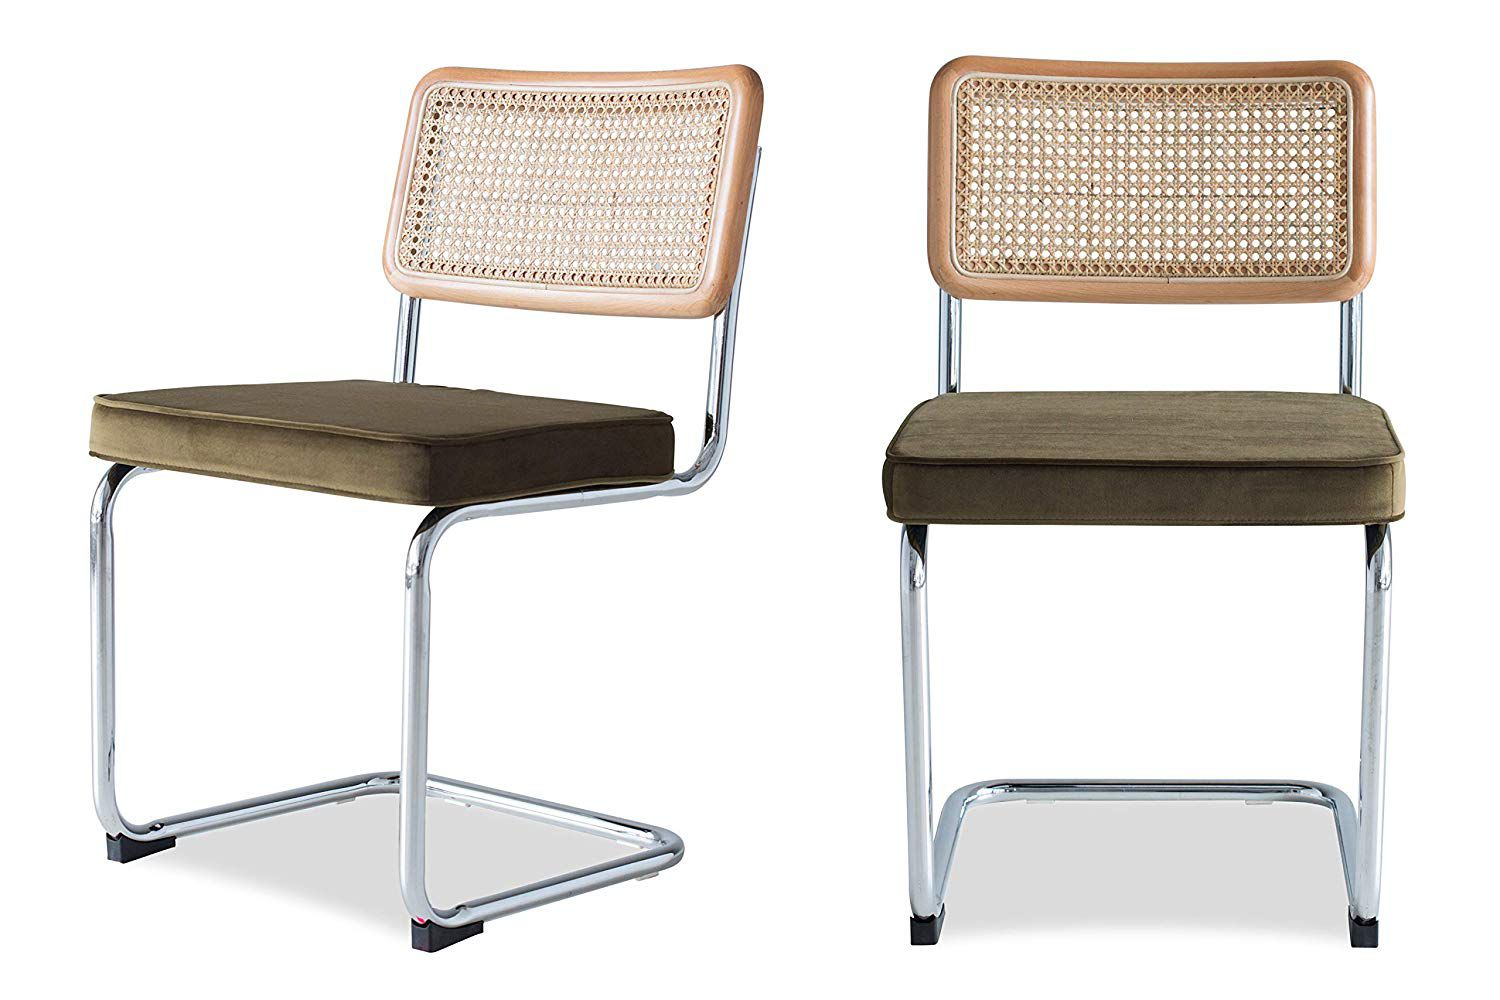 Two midcentury style cantilevered dining chairs with rattan backs and velvet seats.